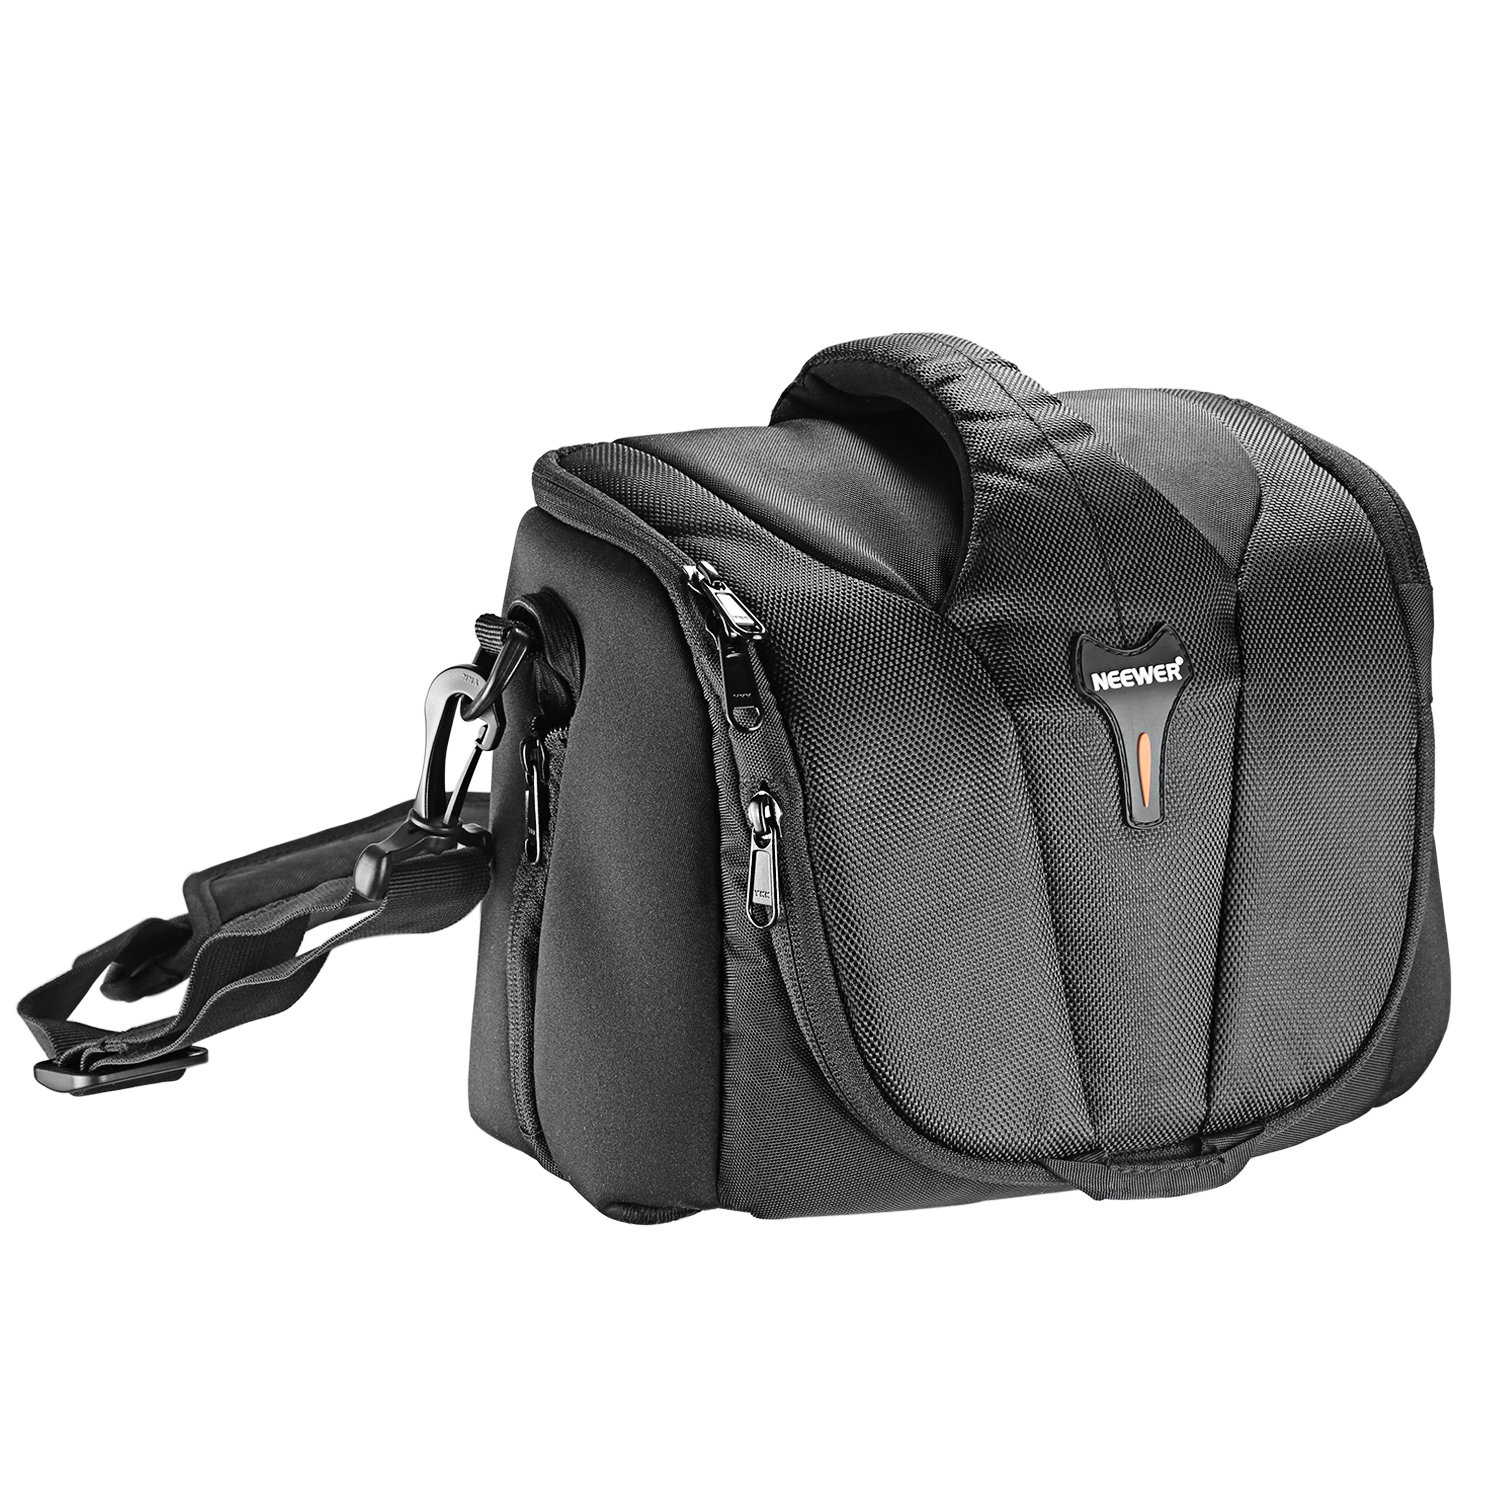 Neewer® Waterproof and Tear Proof Durable Portable DSLR Camera, Lens & Accessories Bag with Shoulder Strap 10084969